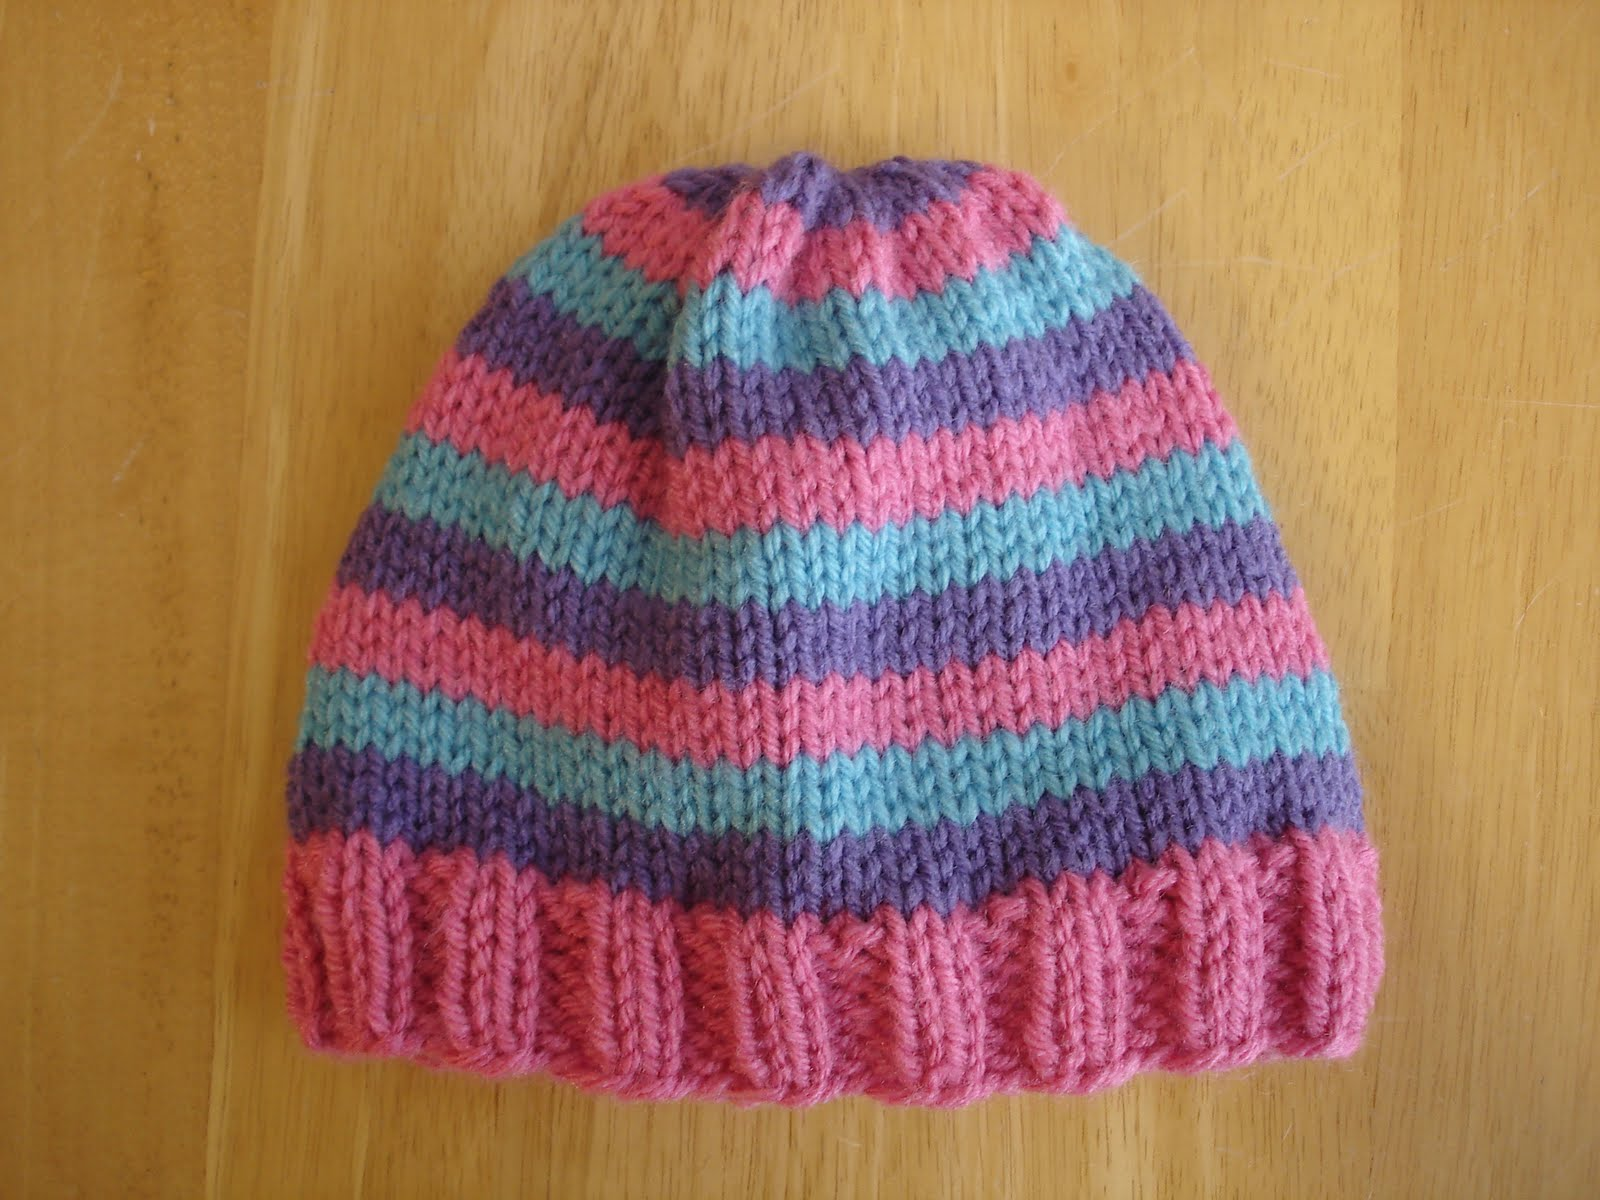 Free Knitting Patterns For Toddler Hats On Straight Needles : Fiber Flux: Free Knitting Pattern...Super Pink Toddler Hat!